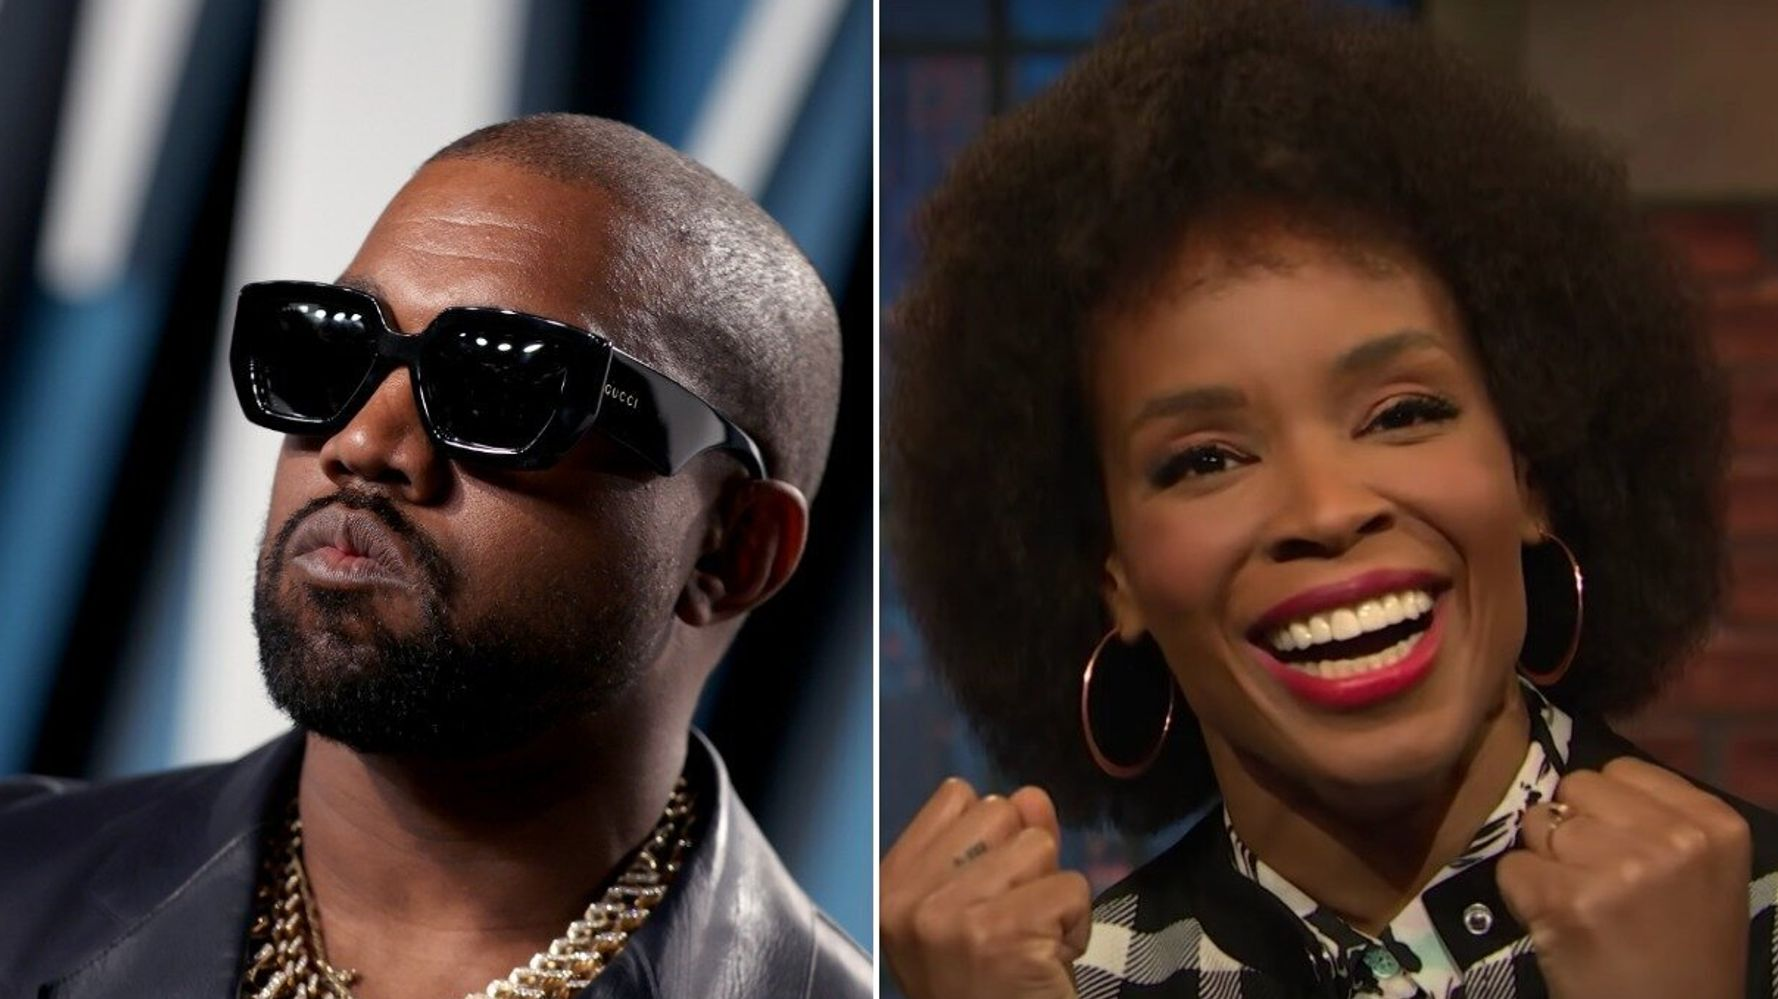 Amber Ruffin Goes 'Off The Rails' On Rappers Supporting Trump